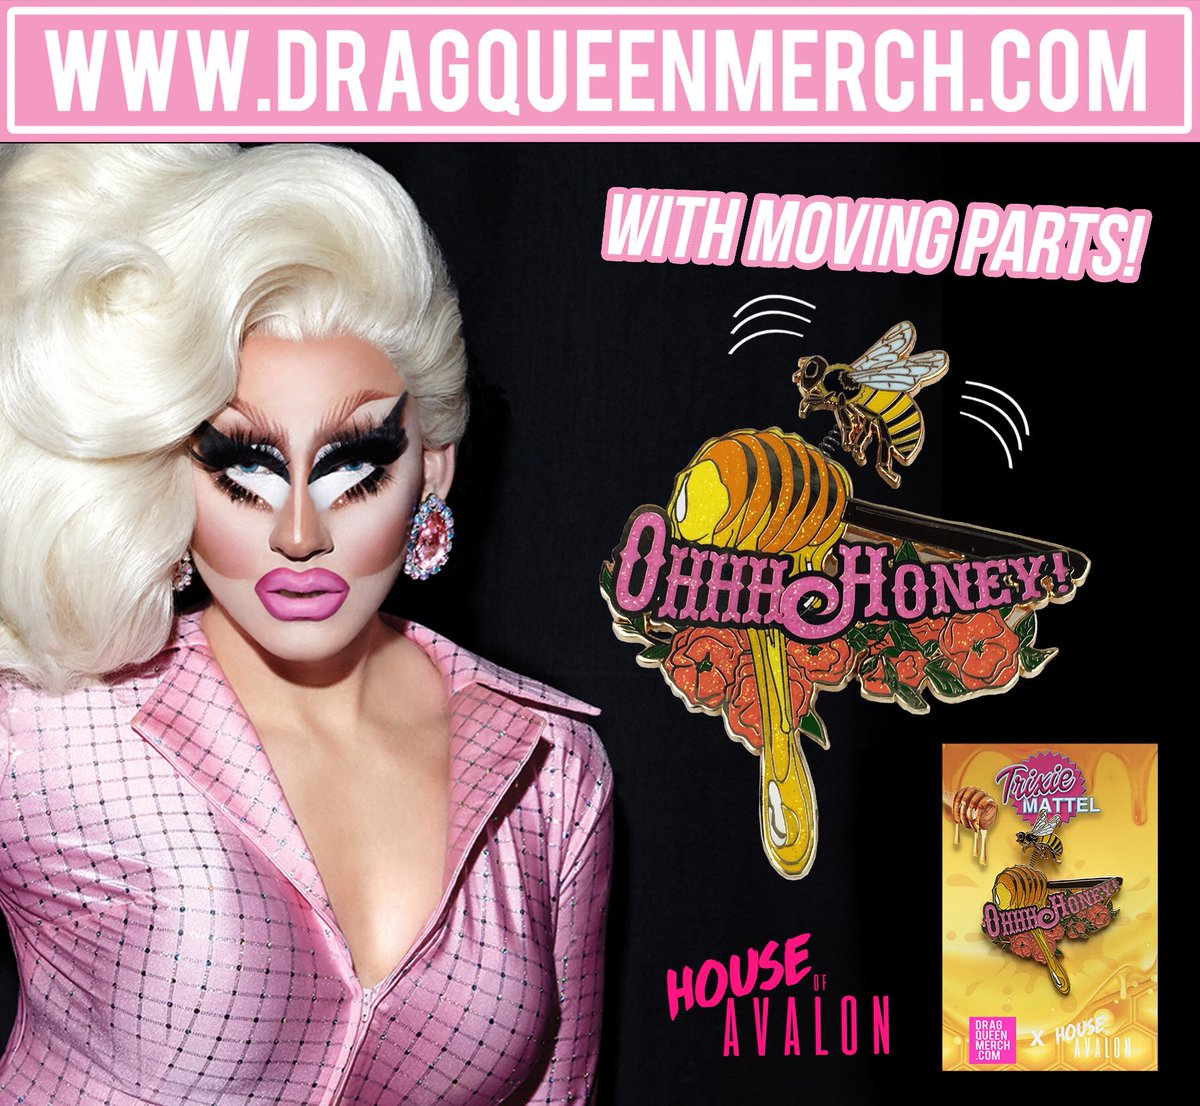 Oh Honey! Due to an inventory error this @trixiemattel enamel Pin showed out of stock tonight but we have some left and it's live again. This item will be sold out again by Saturday. Snag it while you can! dragqueenmerch.com